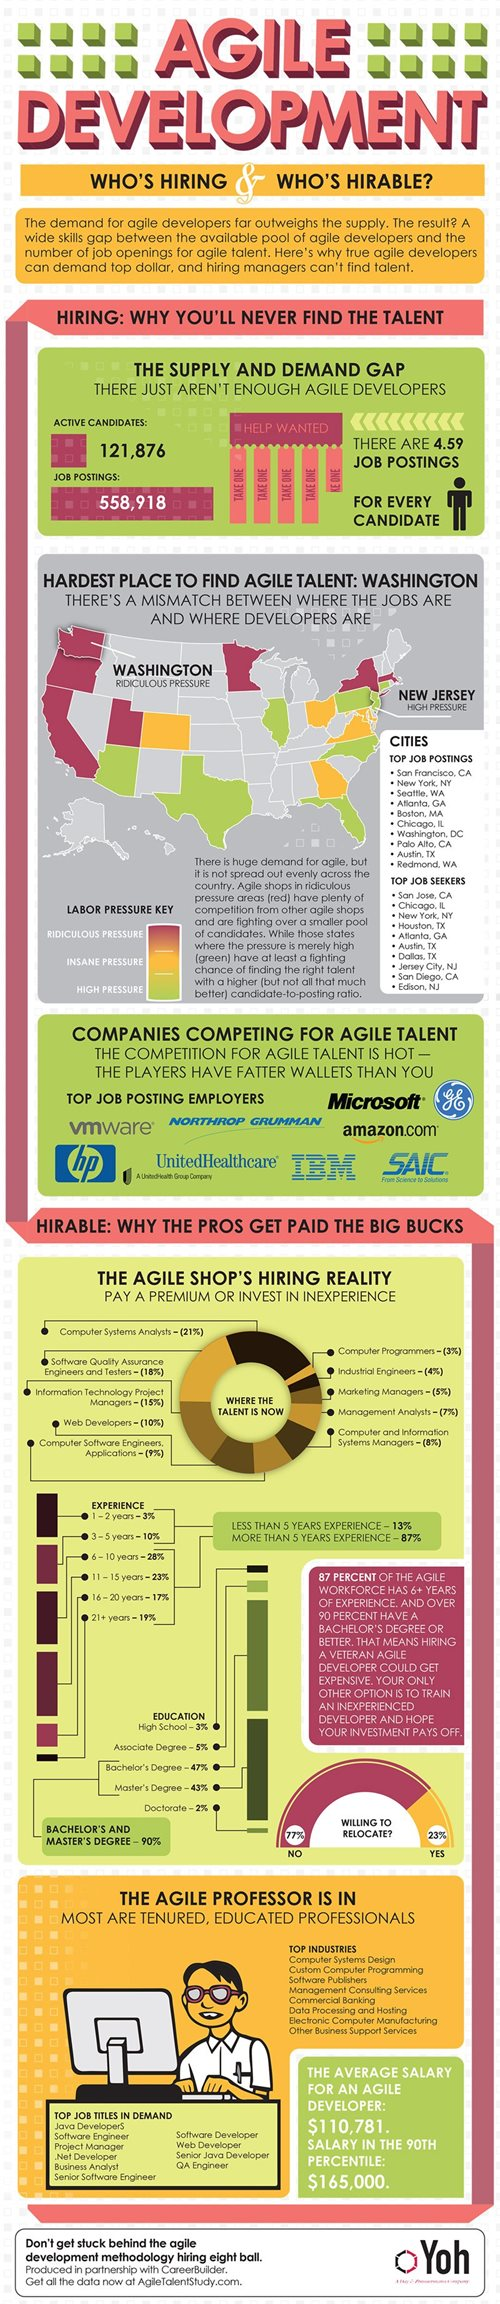 jobs-agile-developers-infographic.jpg